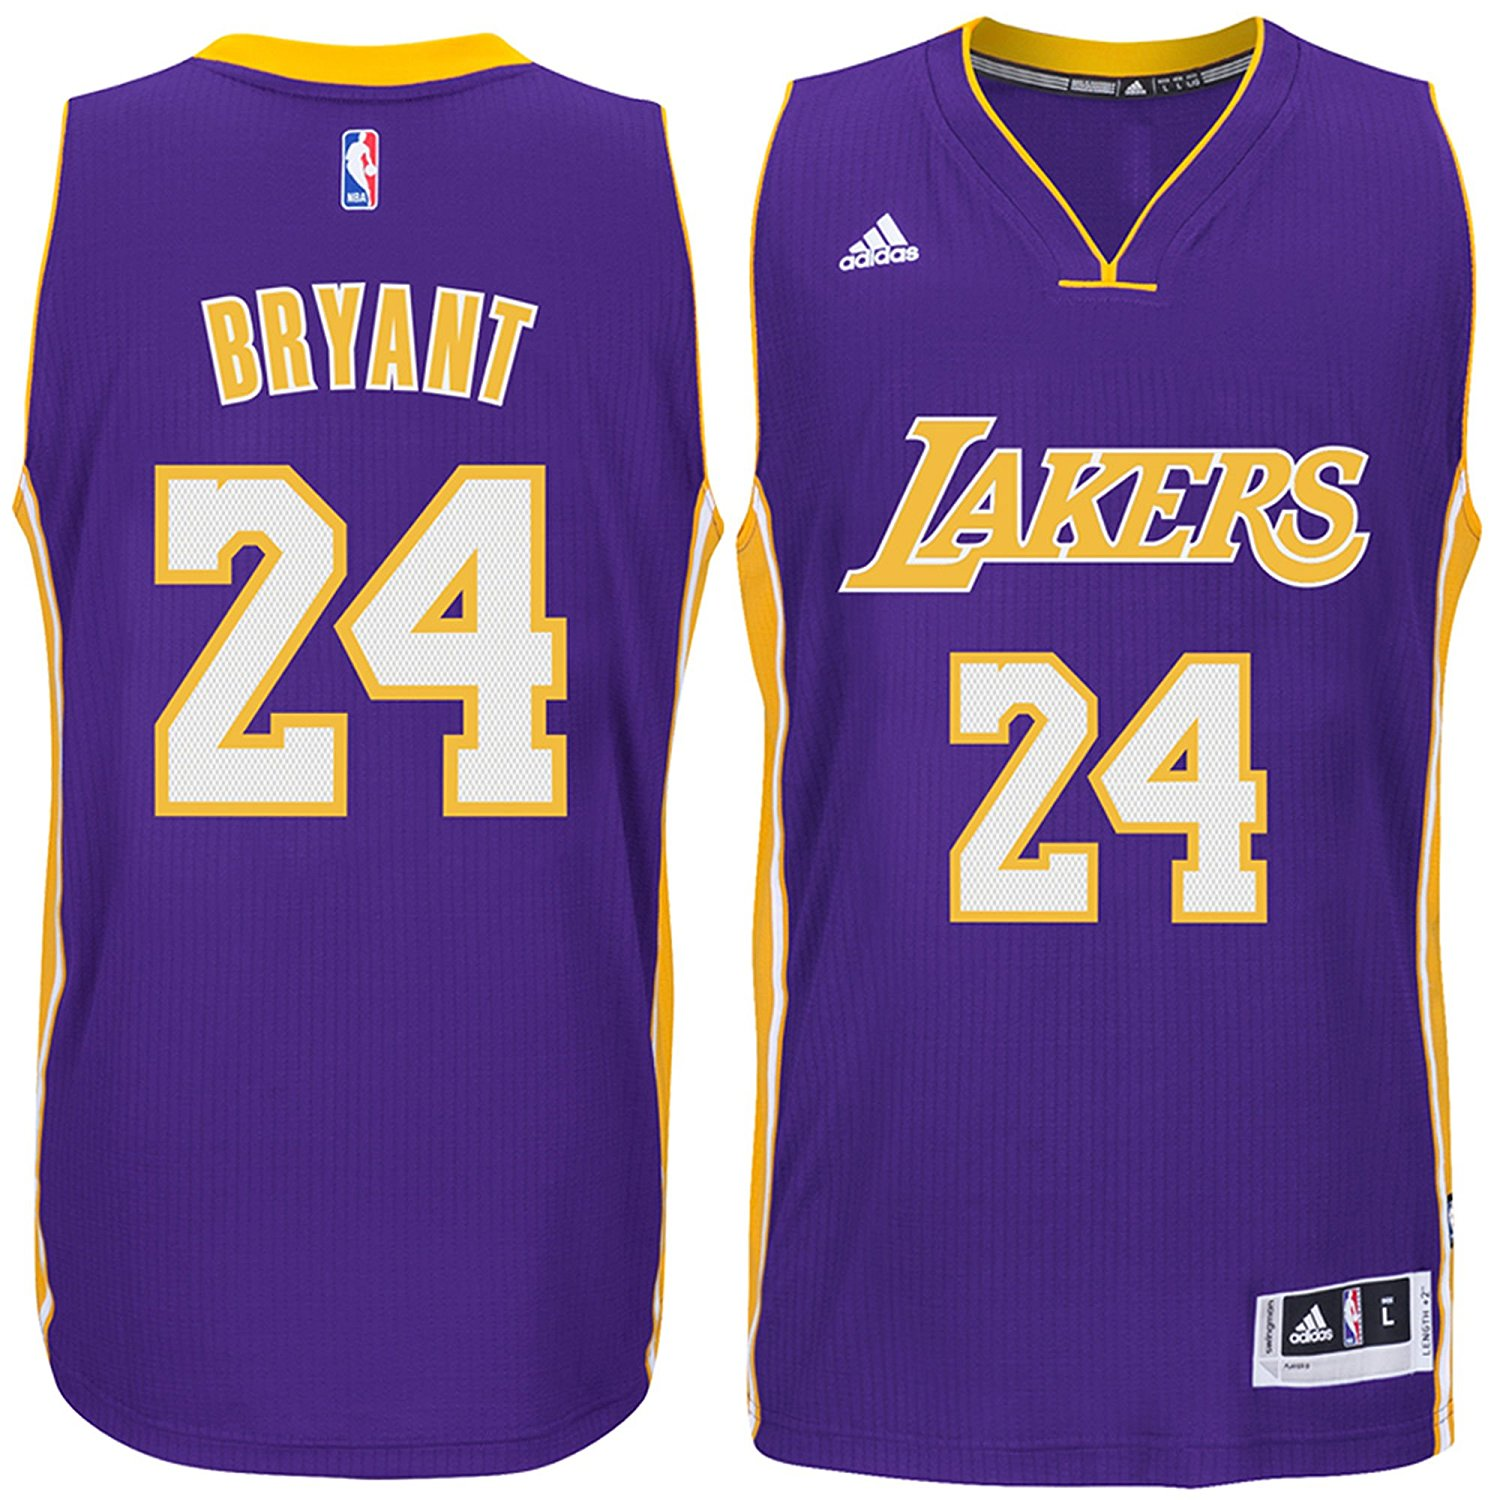 958b88d7326 Get Quotations · Kobe Bryant Los Angeles Lakers Purple NBA Youth Road Swingman  Jersey